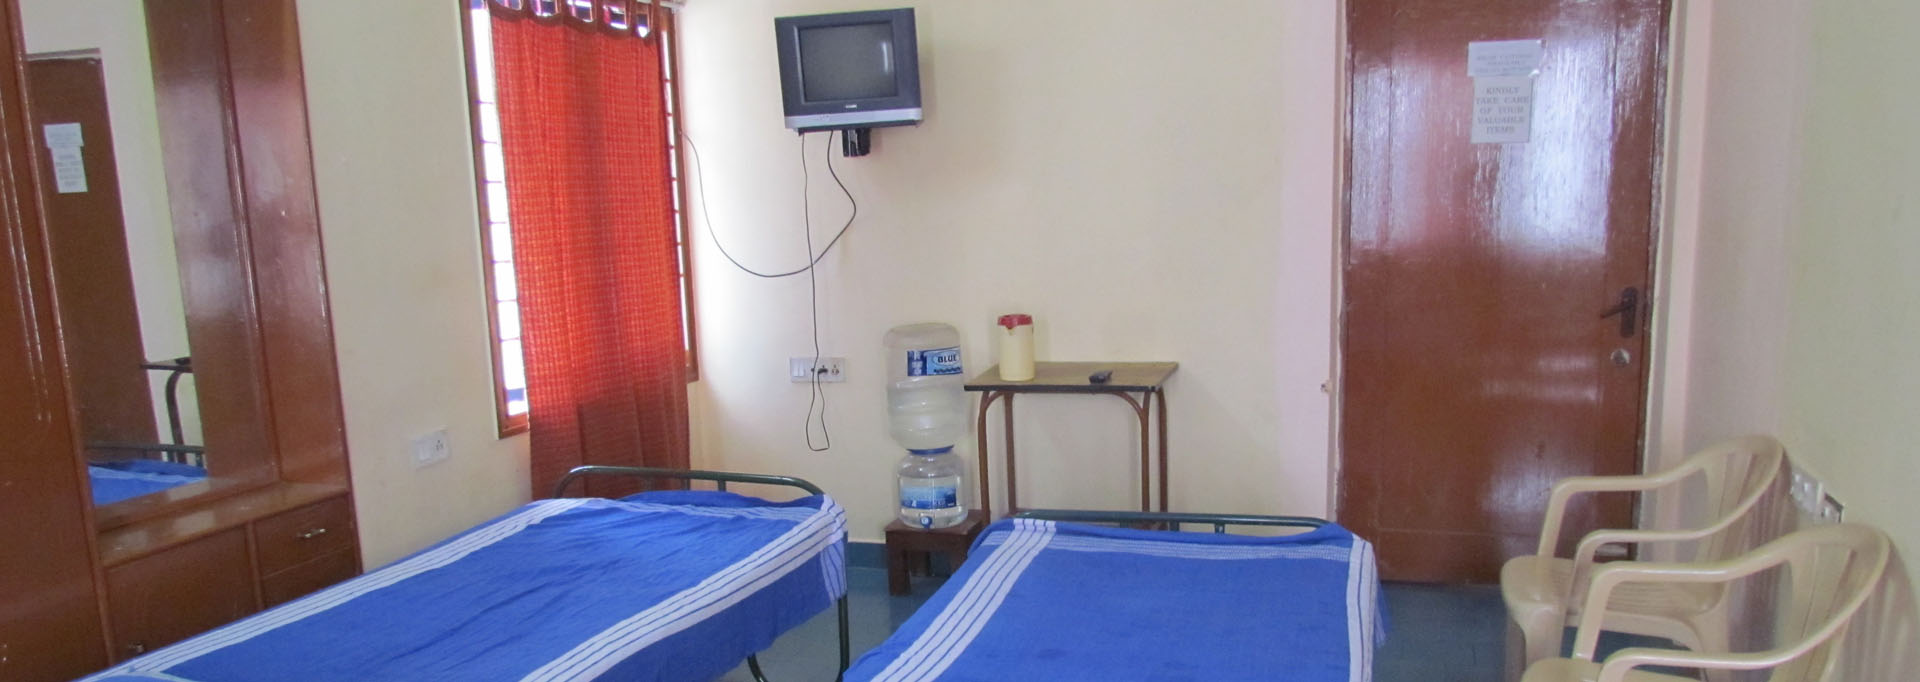 Dhanvanthri Hospital Room, Ayurveda Hospital Facility